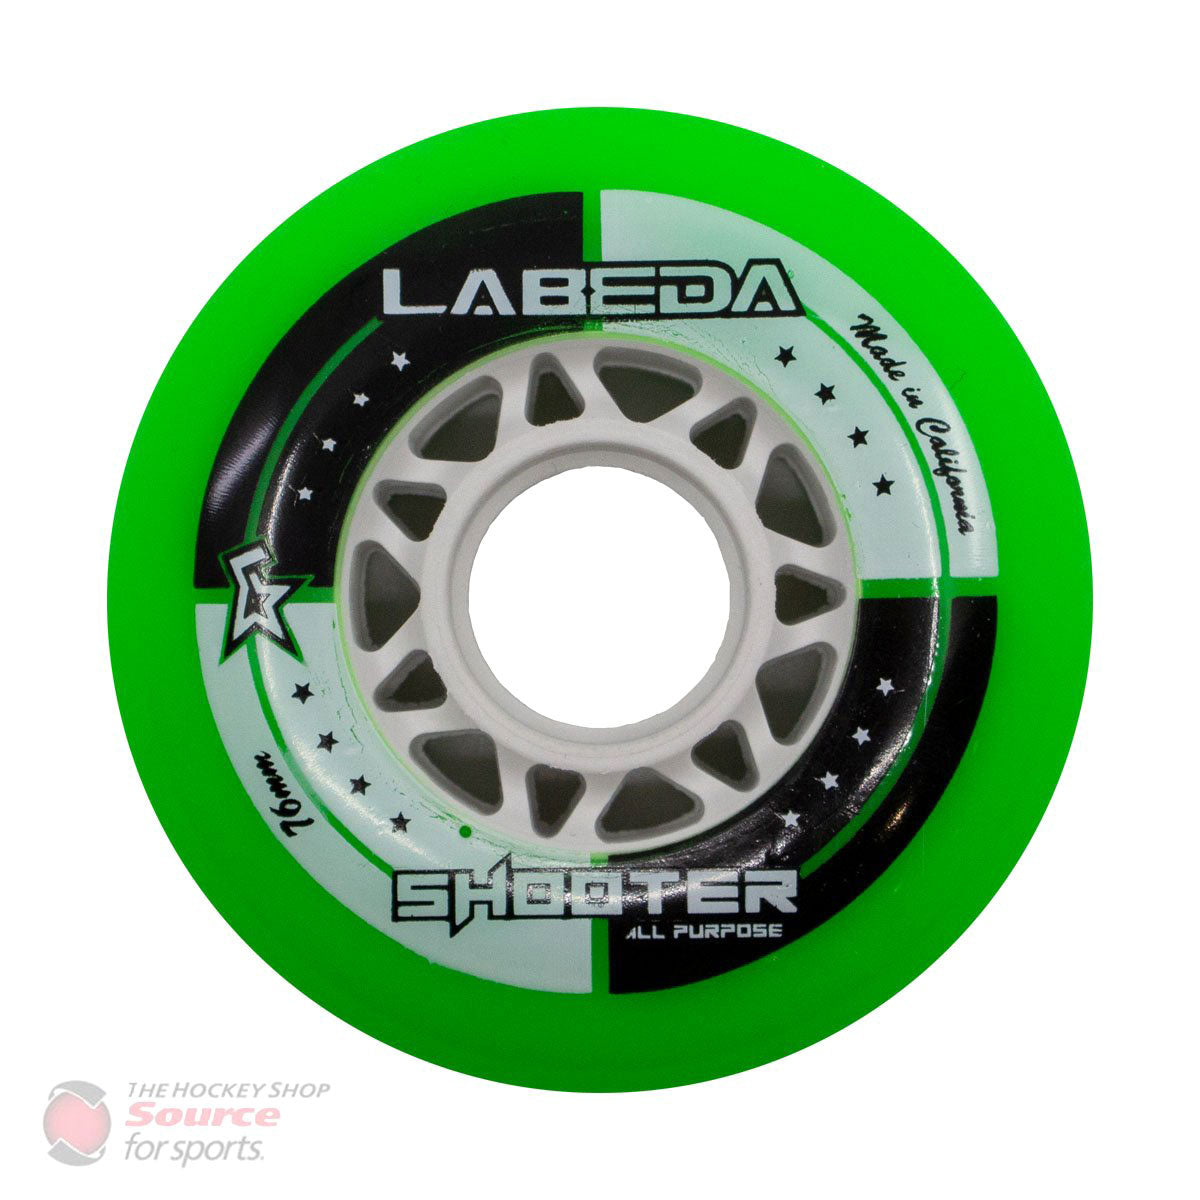 Labeda Shooter Roller Hockey Wheels - Green (78A)